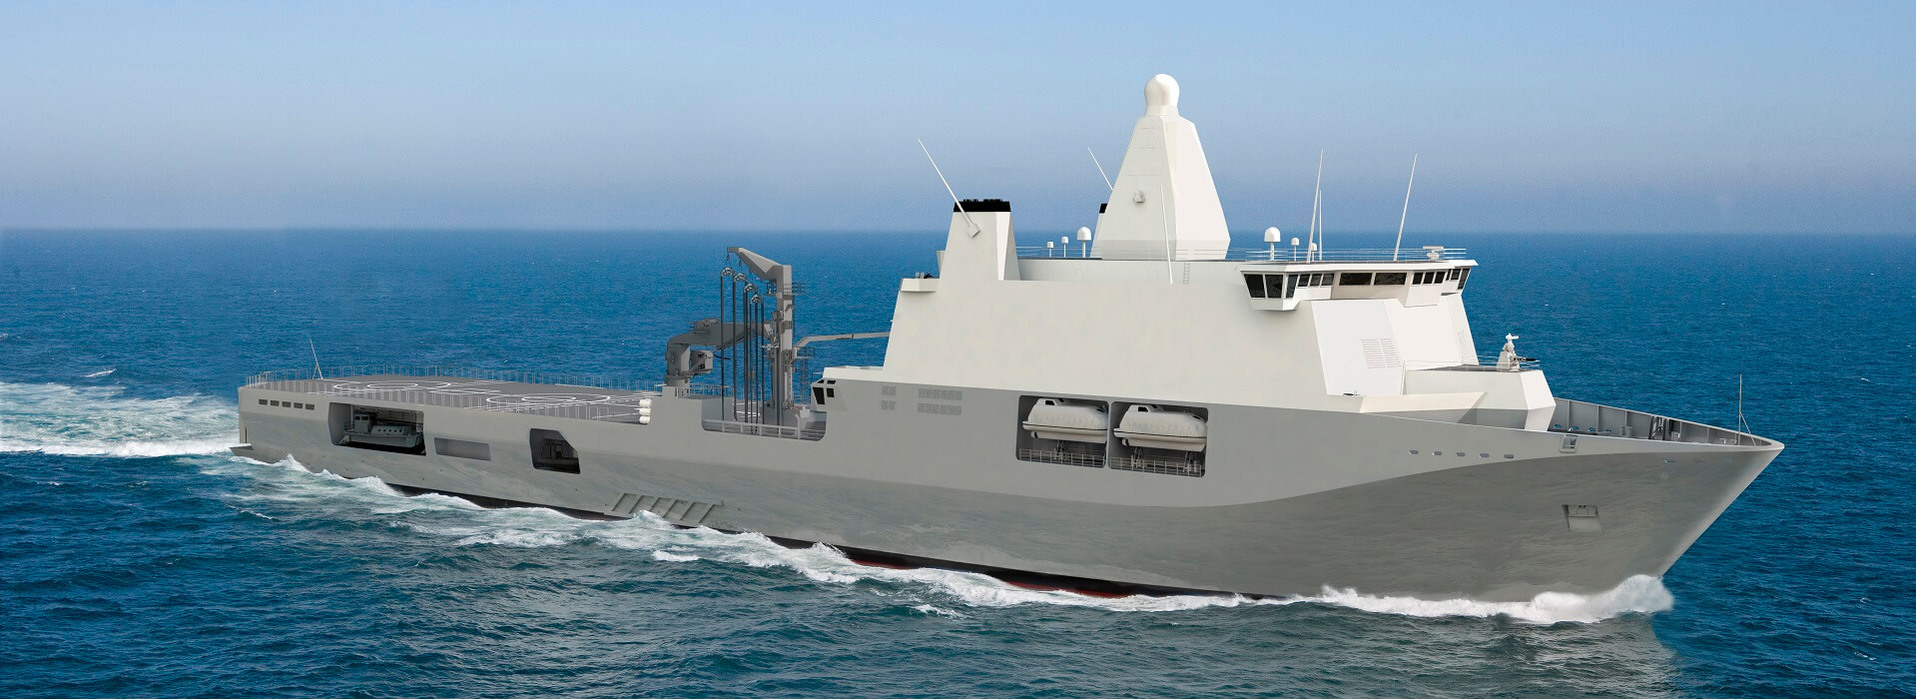 Zr. Ms. Karel Doorman